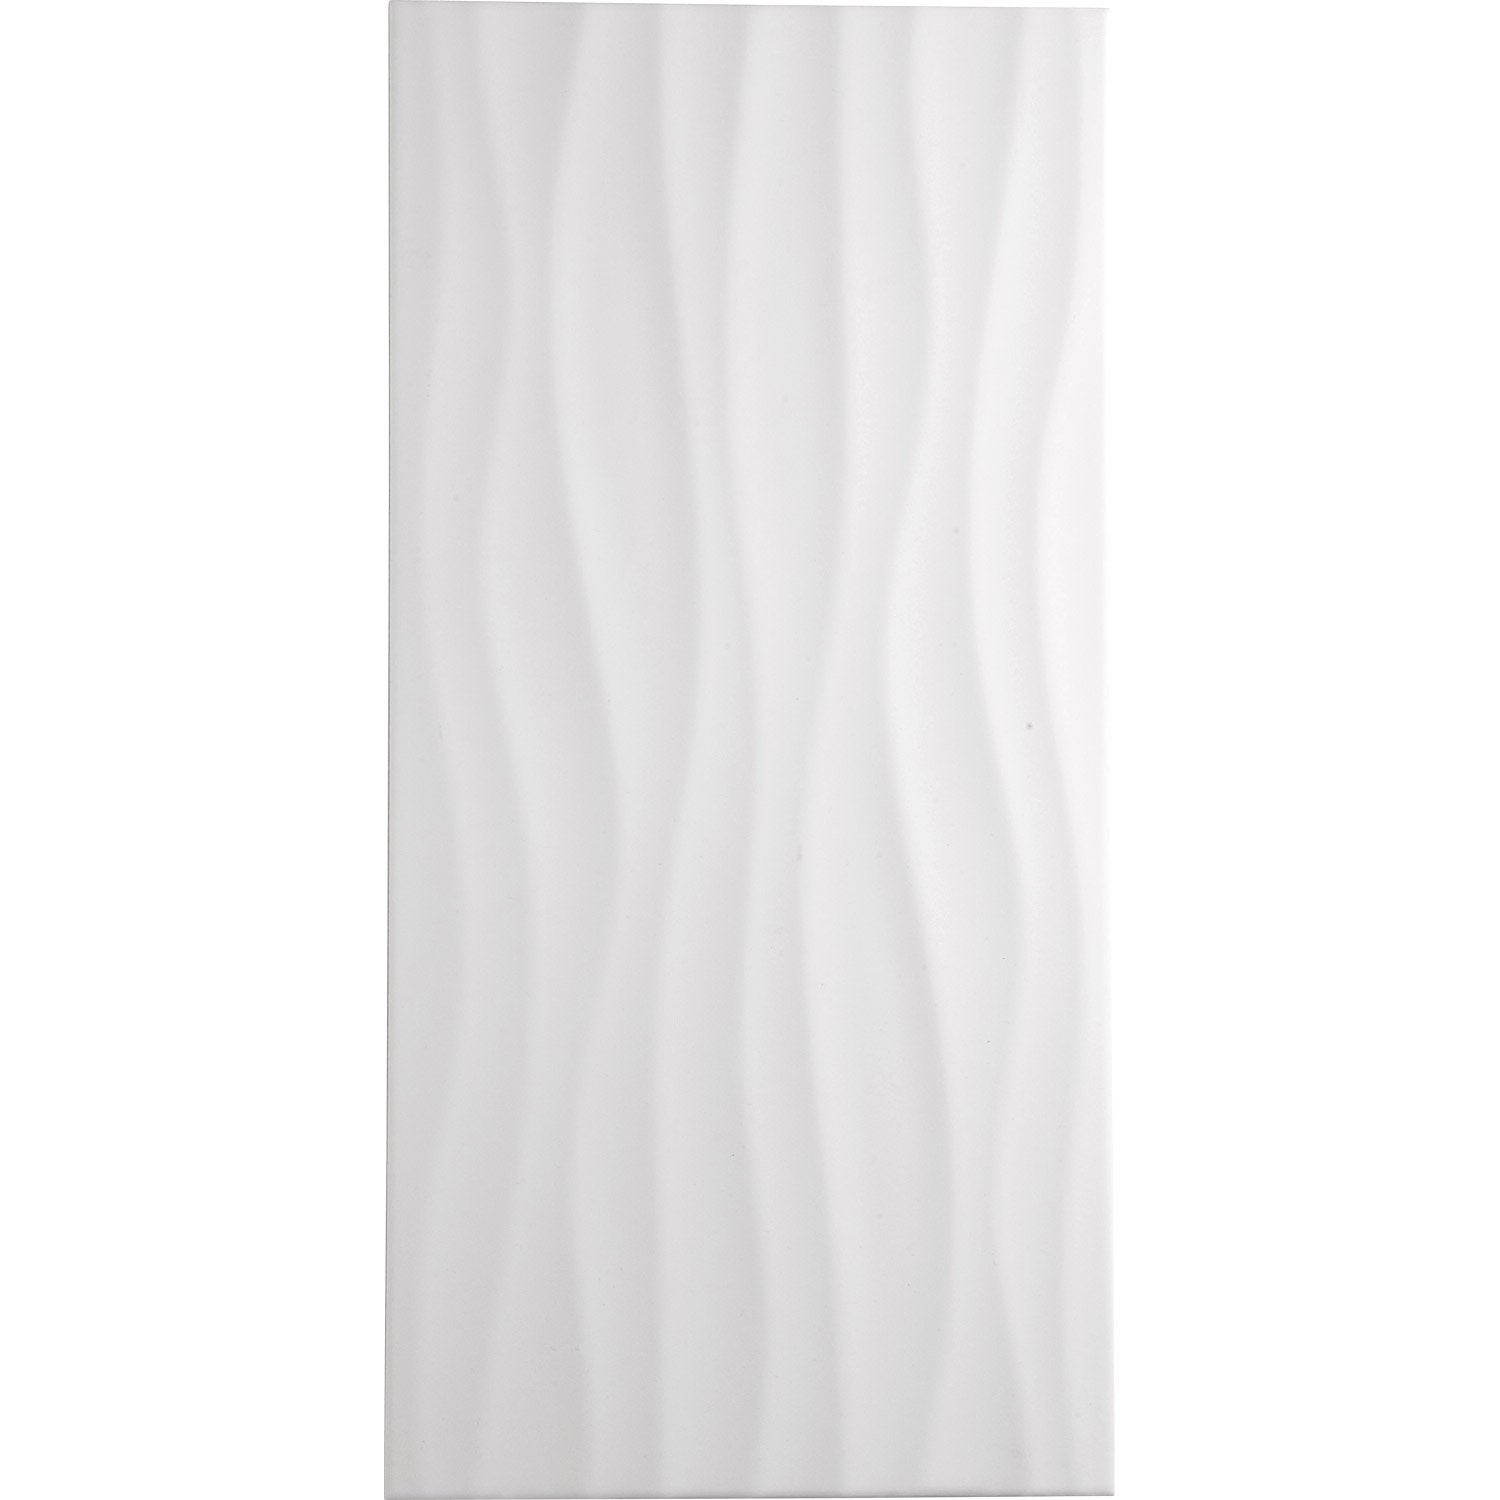 Beautiful carrelage salle de bain blanc relief ideas for Carrelage blanc mural salle de bain